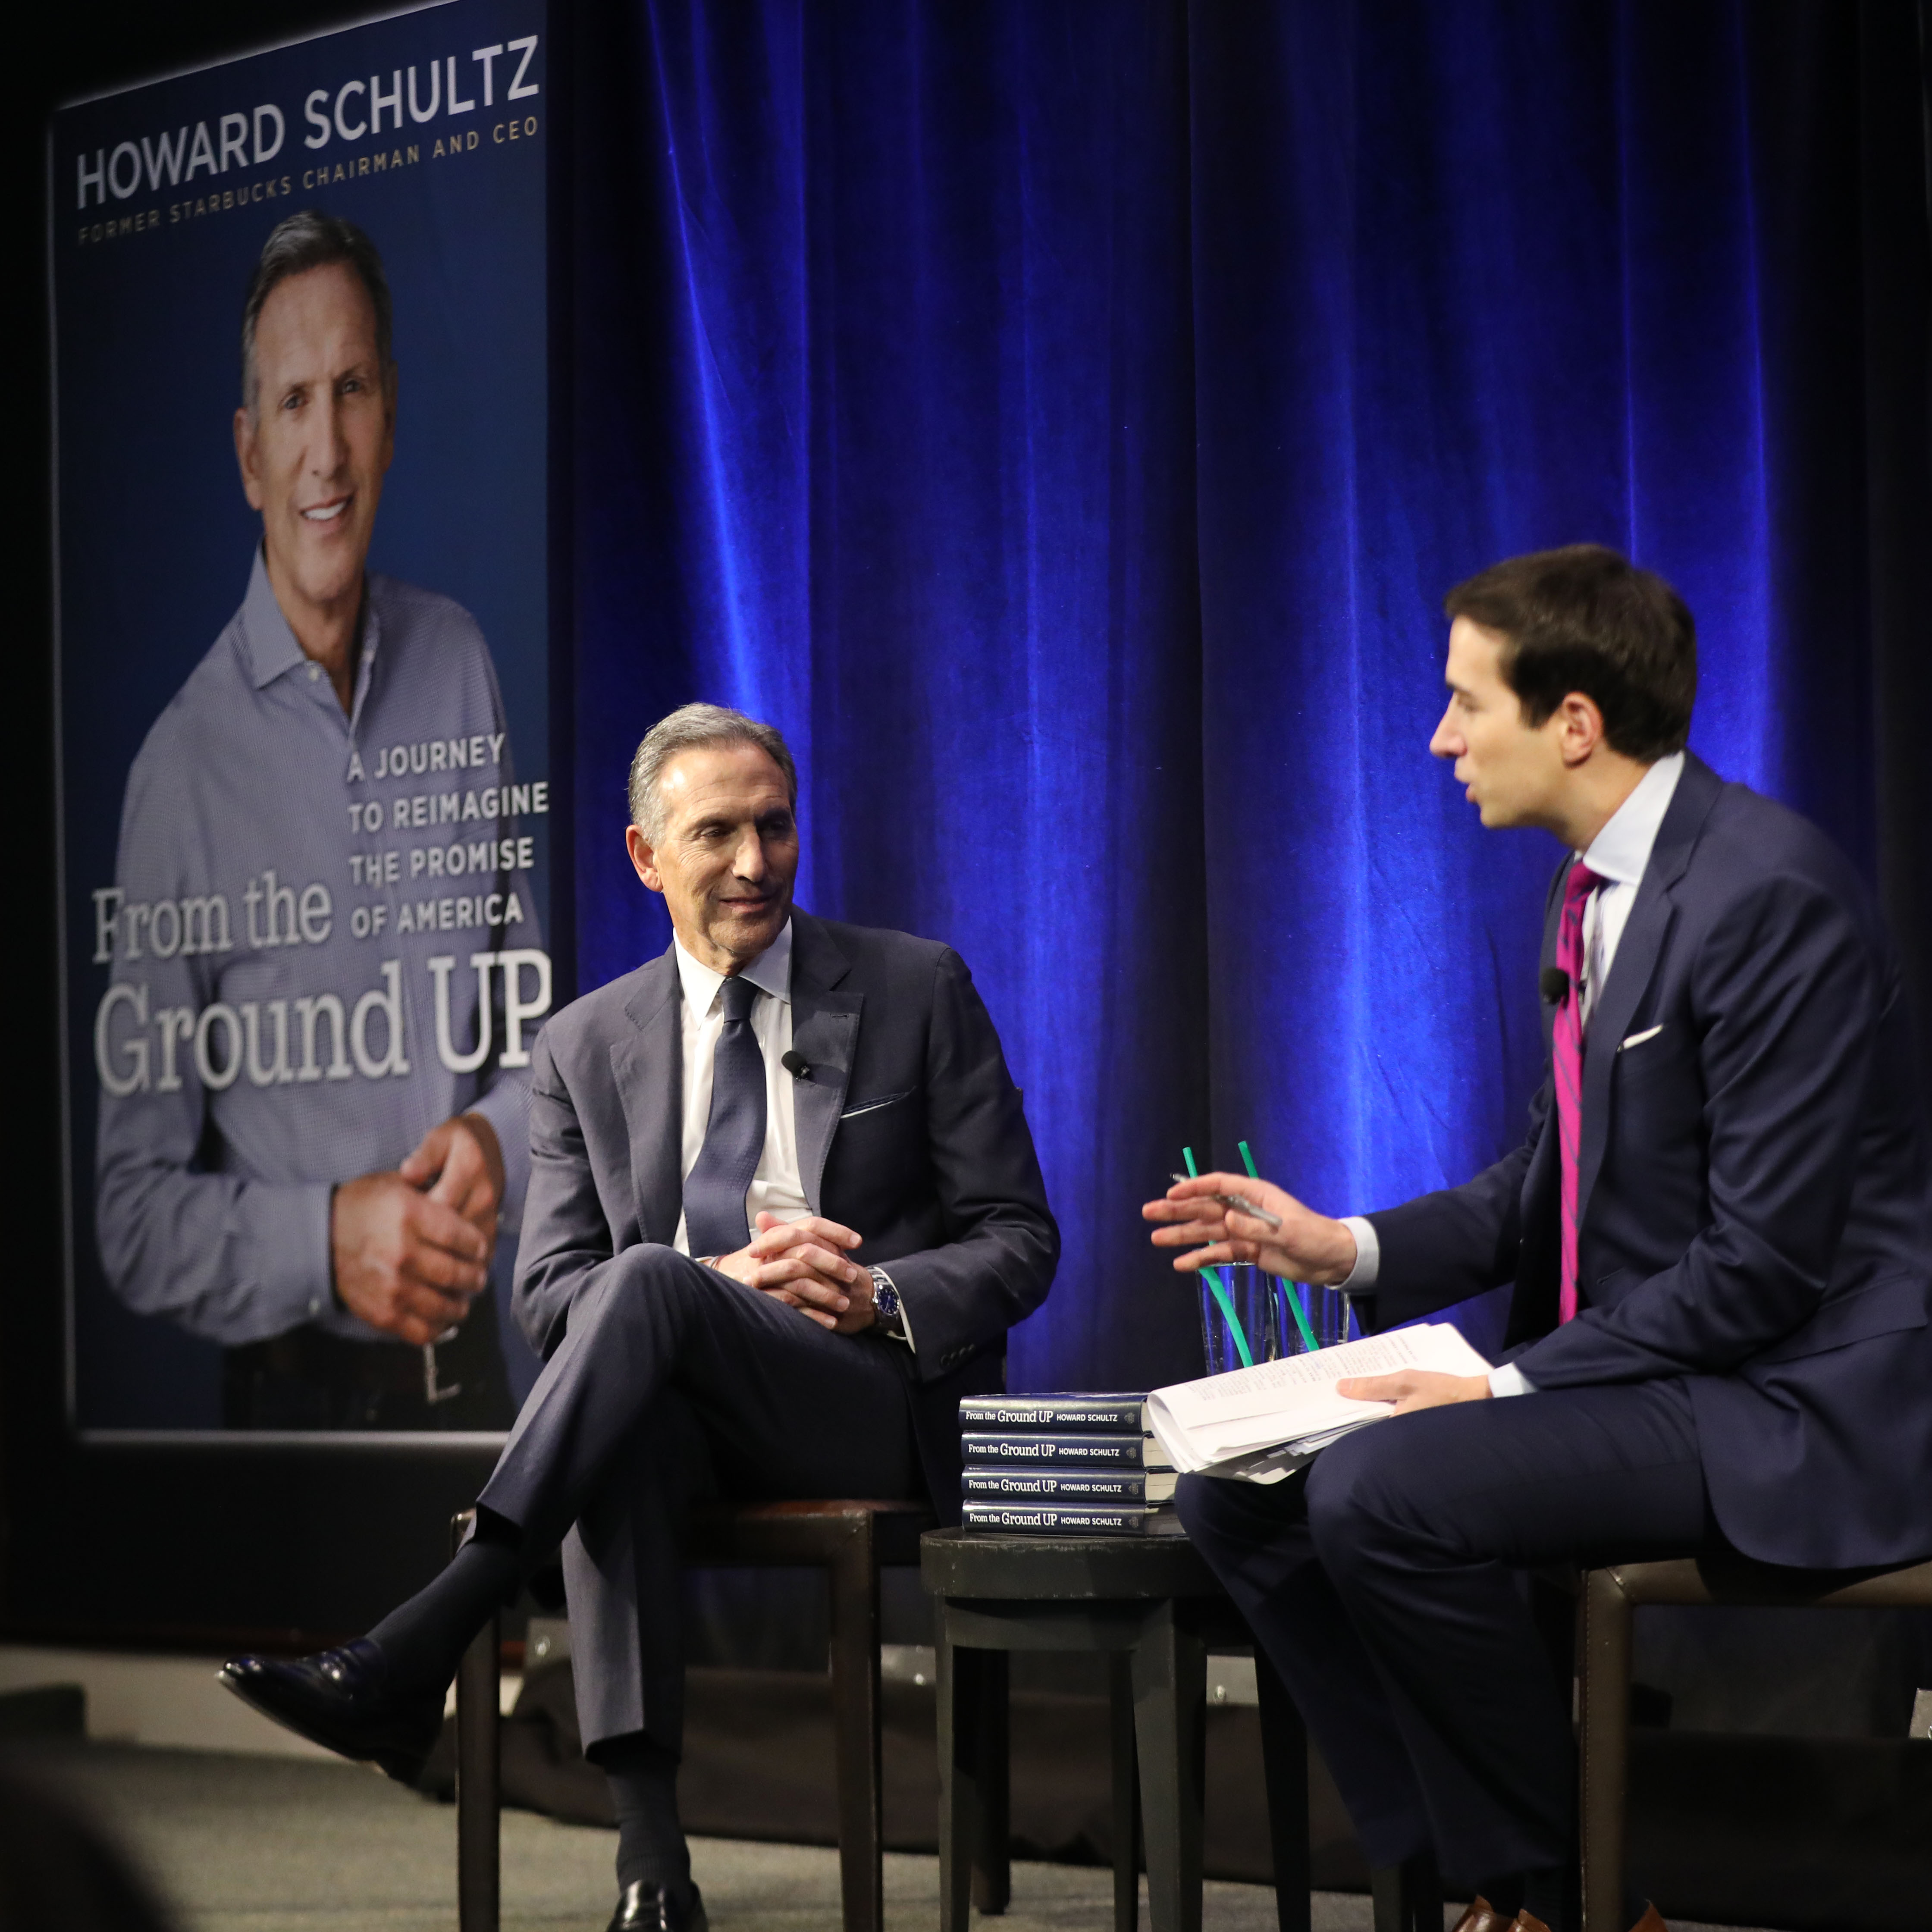 """Howard Schultz, the billionaire former Starbucks CEO, speaks at a Barnes and Noble bookstore with Andrew Ross Sorkin about his new book """"From the Ground Up"""" on January 28, 2019 in New York City. (Photo by Spencer Platt/Getty Images)"""